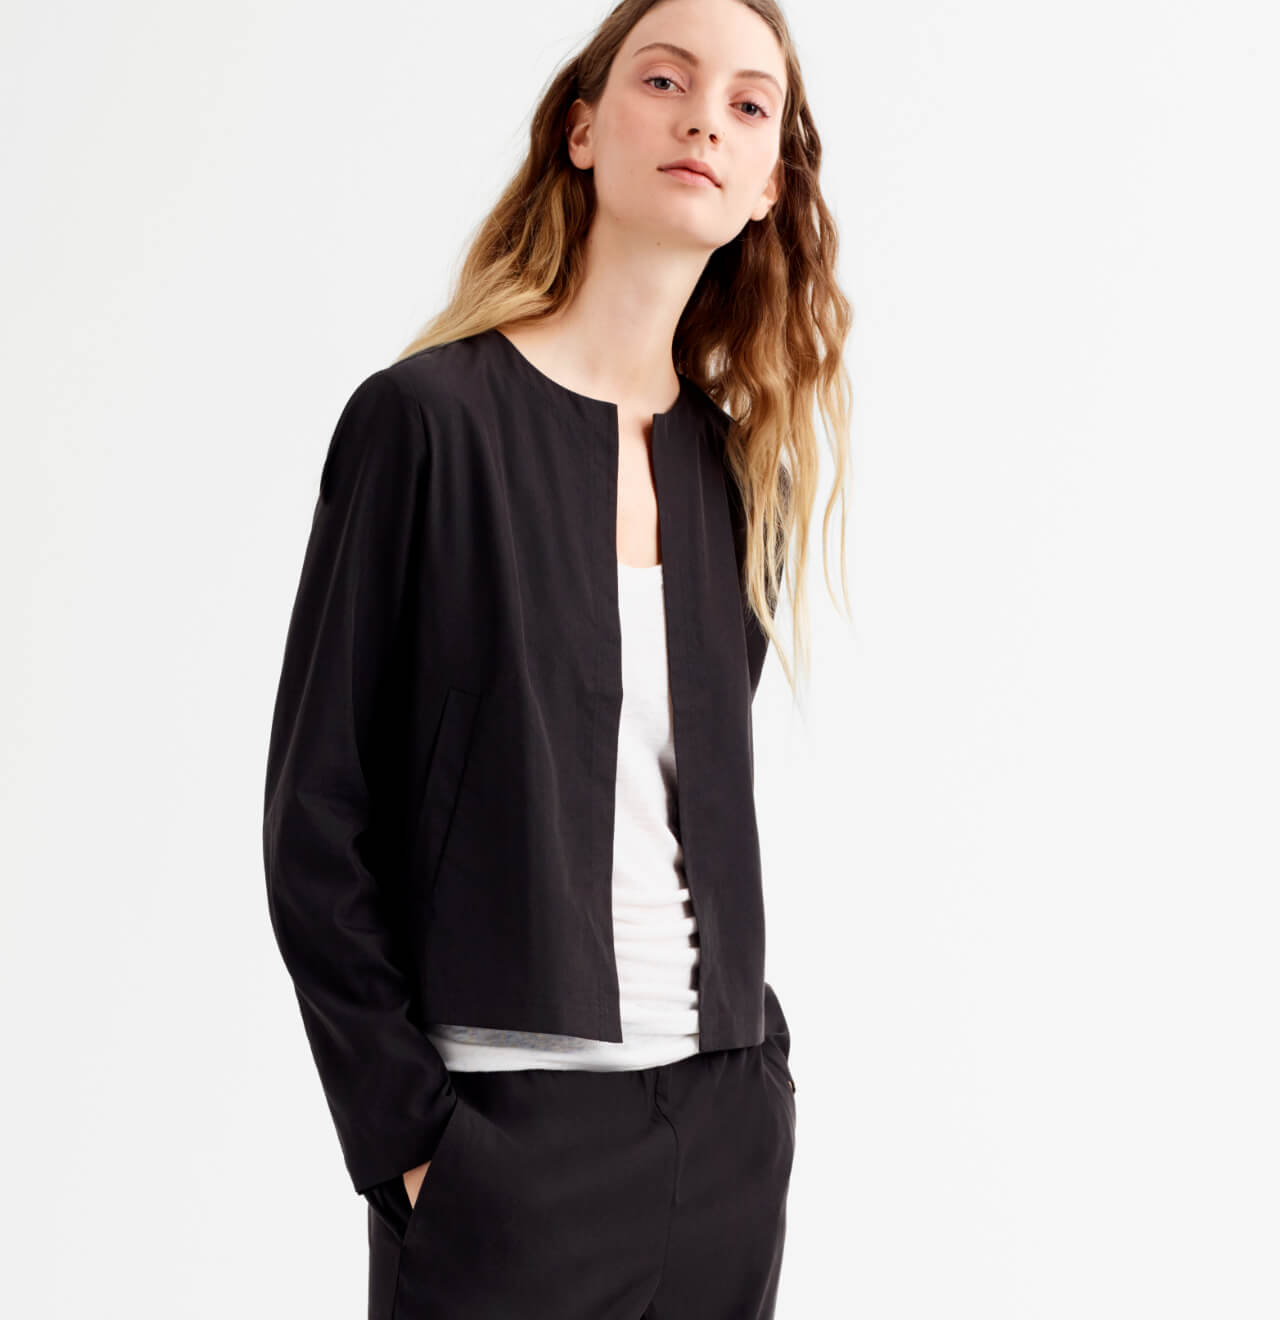 EILEEN FISHER New York City brand